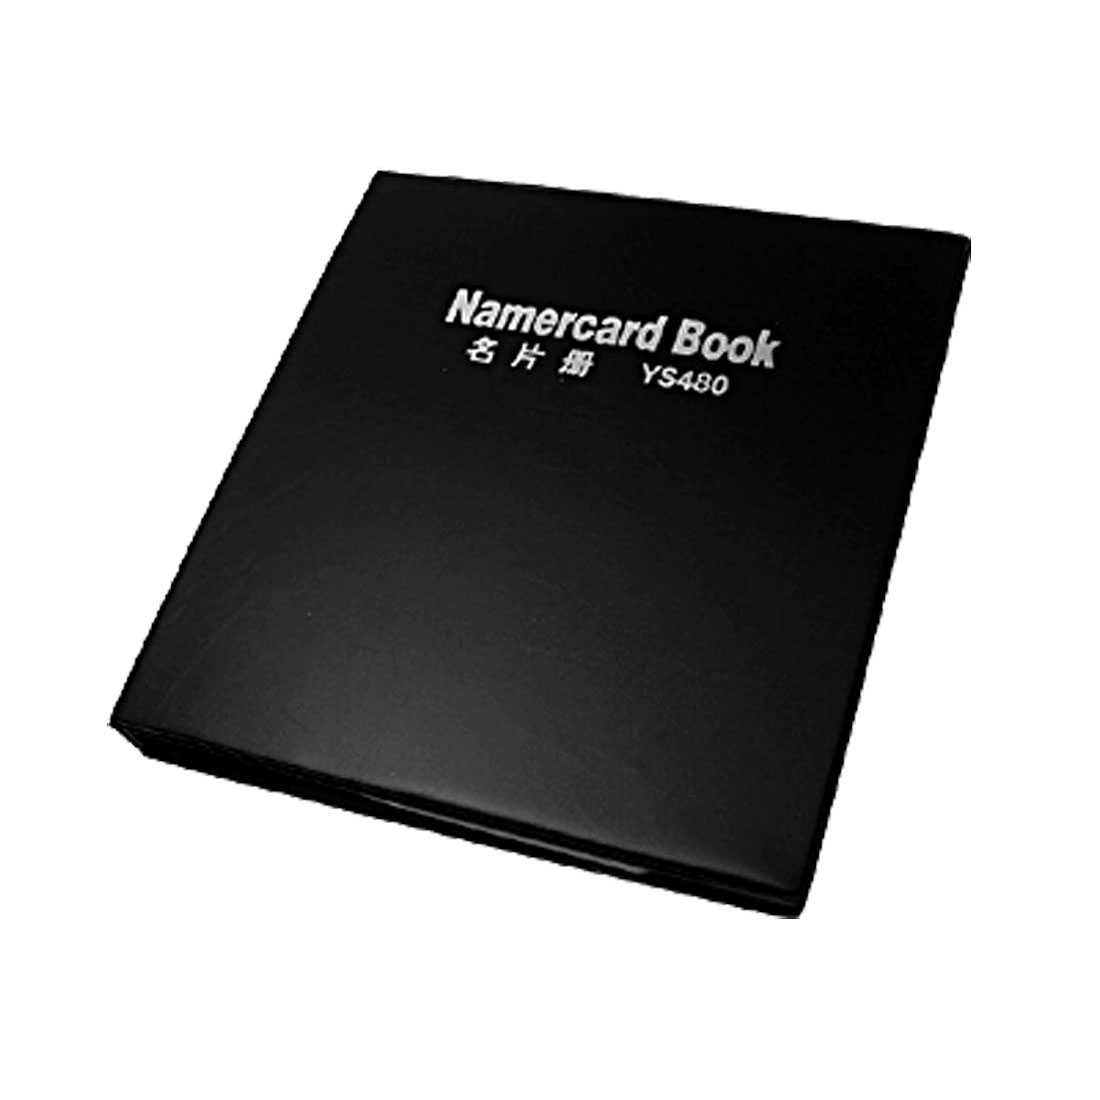 Black Leather Fashion Business Name Card Holder Book 480